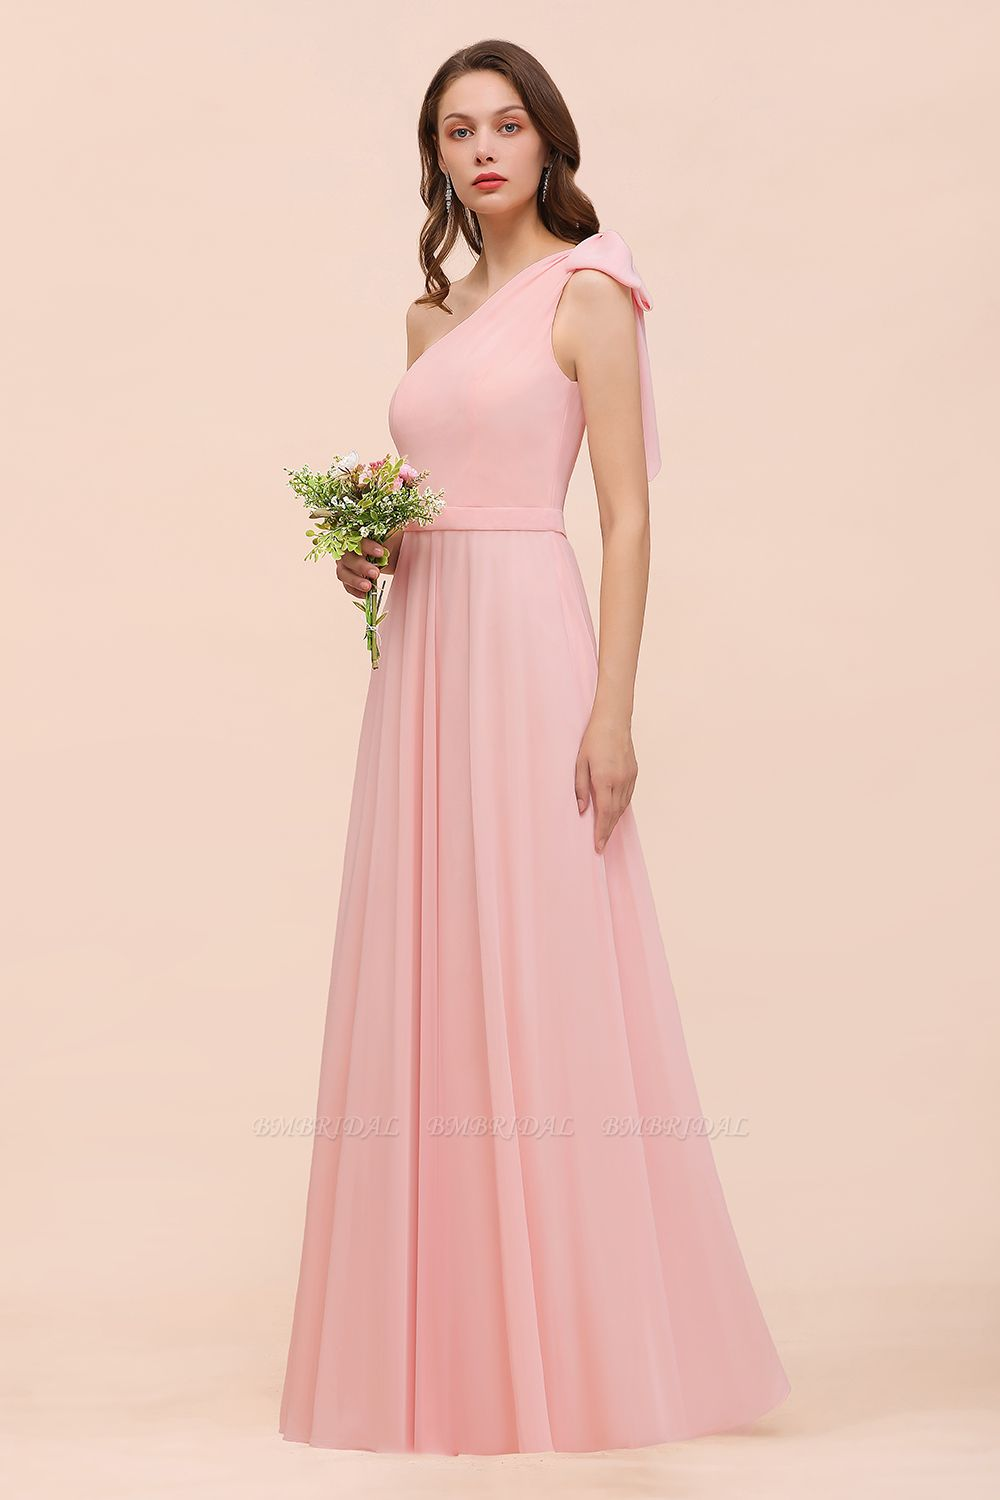 Chic One Shoulder Sleeveless Pink Chiffon Bridesmaid Dress with Bow